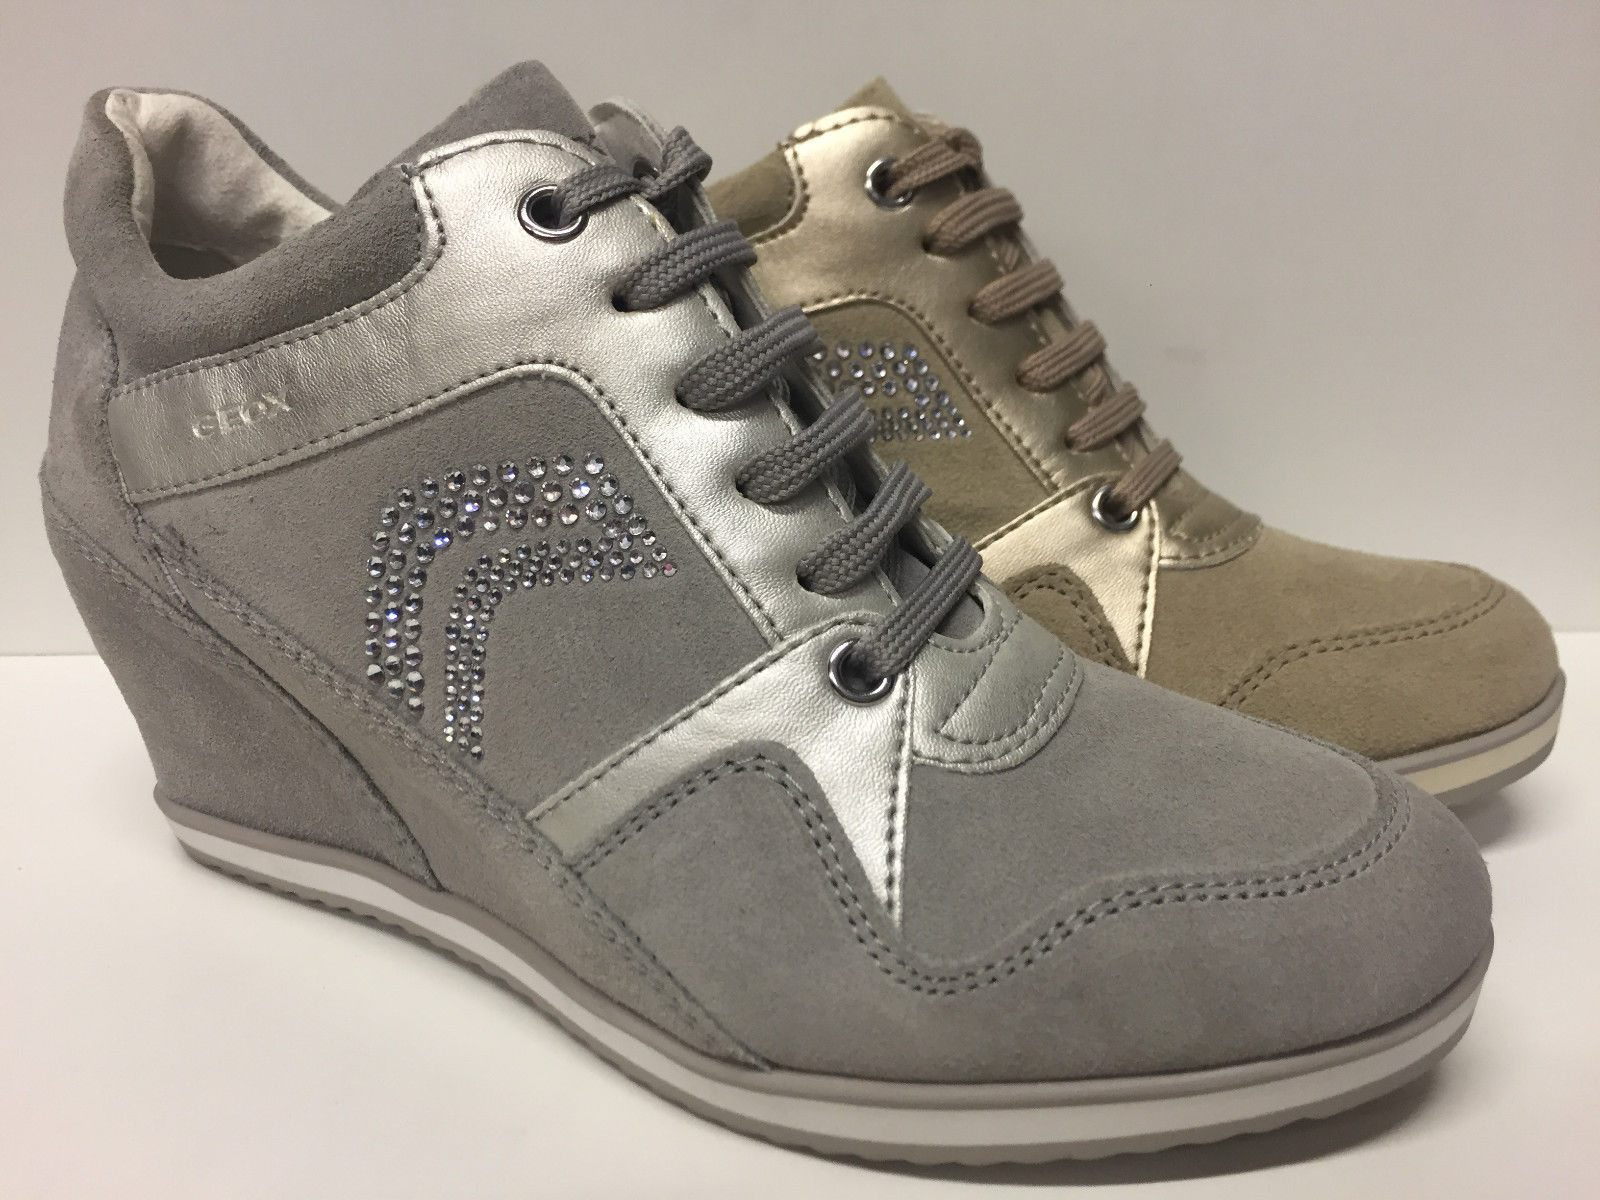 SCARPE CASUAL DONNA GEOX ORIGINAL ILLUSION D5454A PELLE SHOES LEATHER ZEPPA GIRL